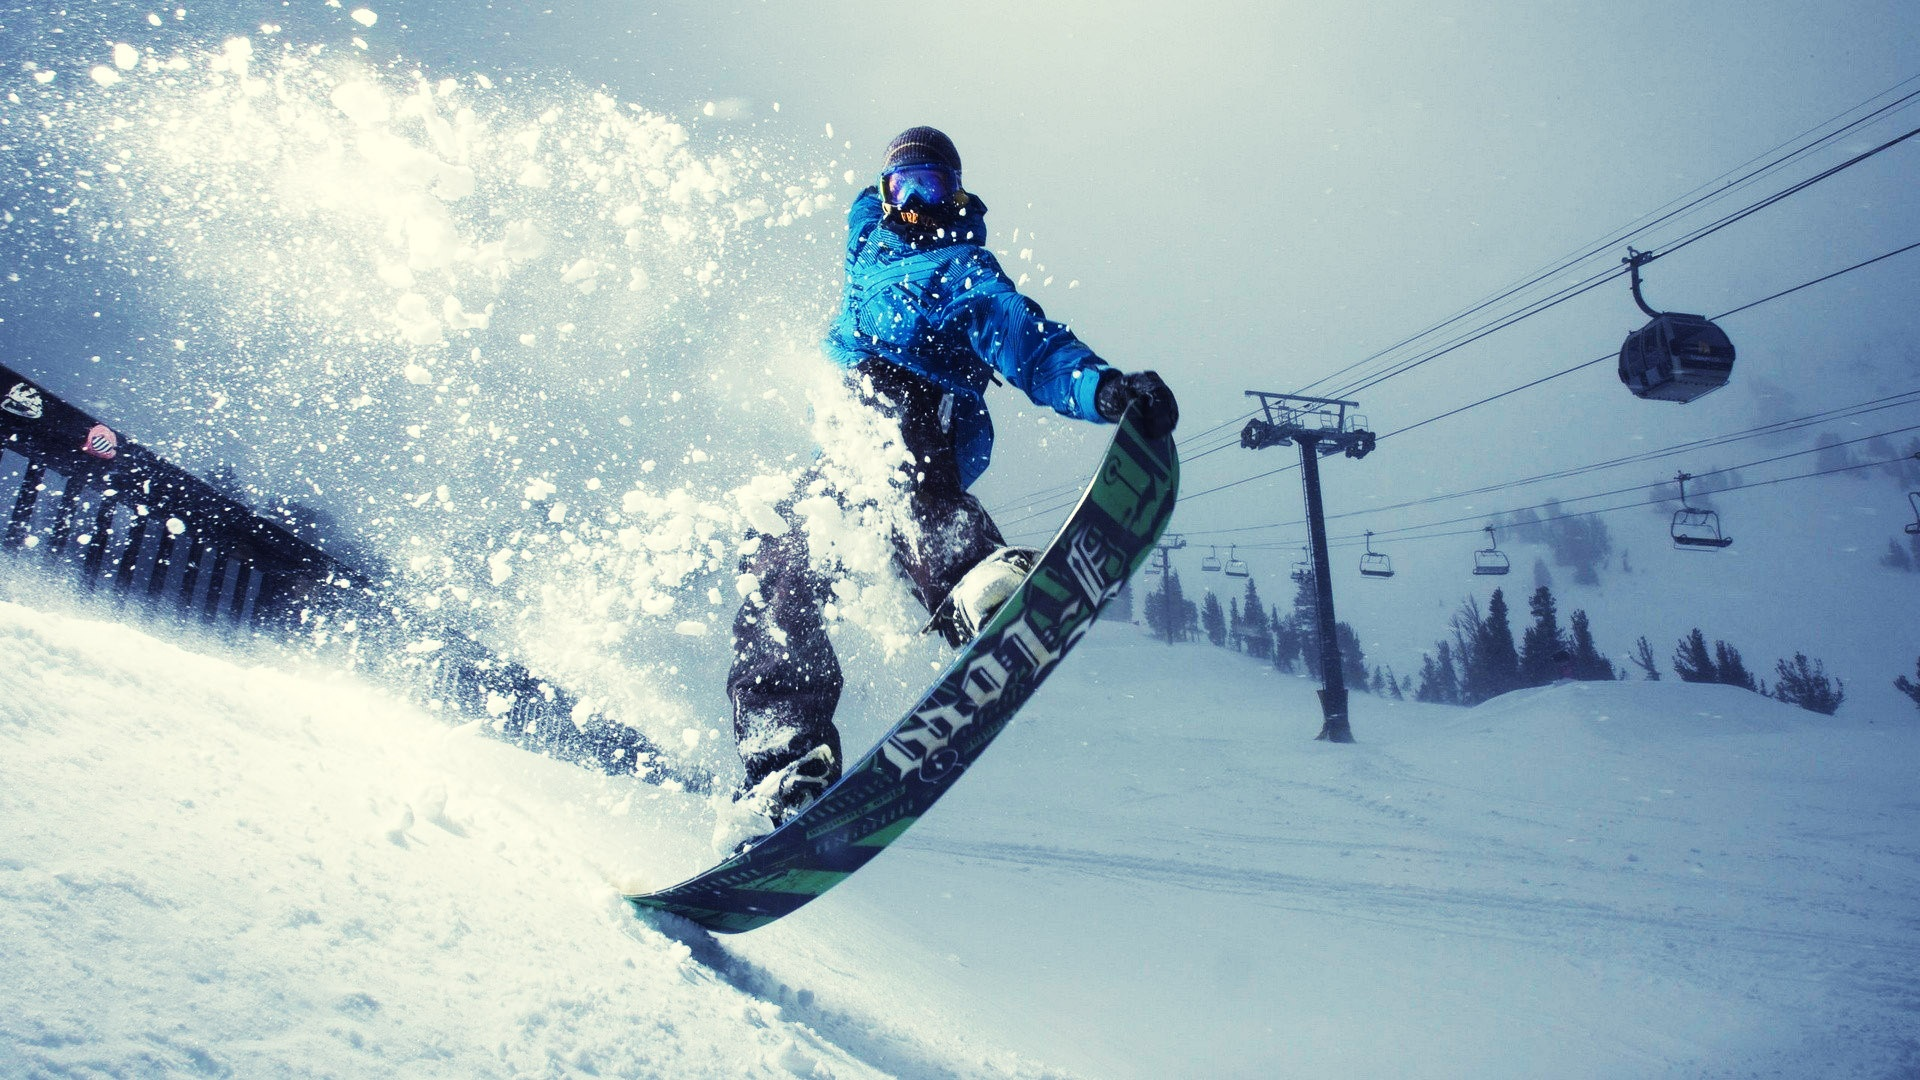 snowboard_burton_wallpaper_hd